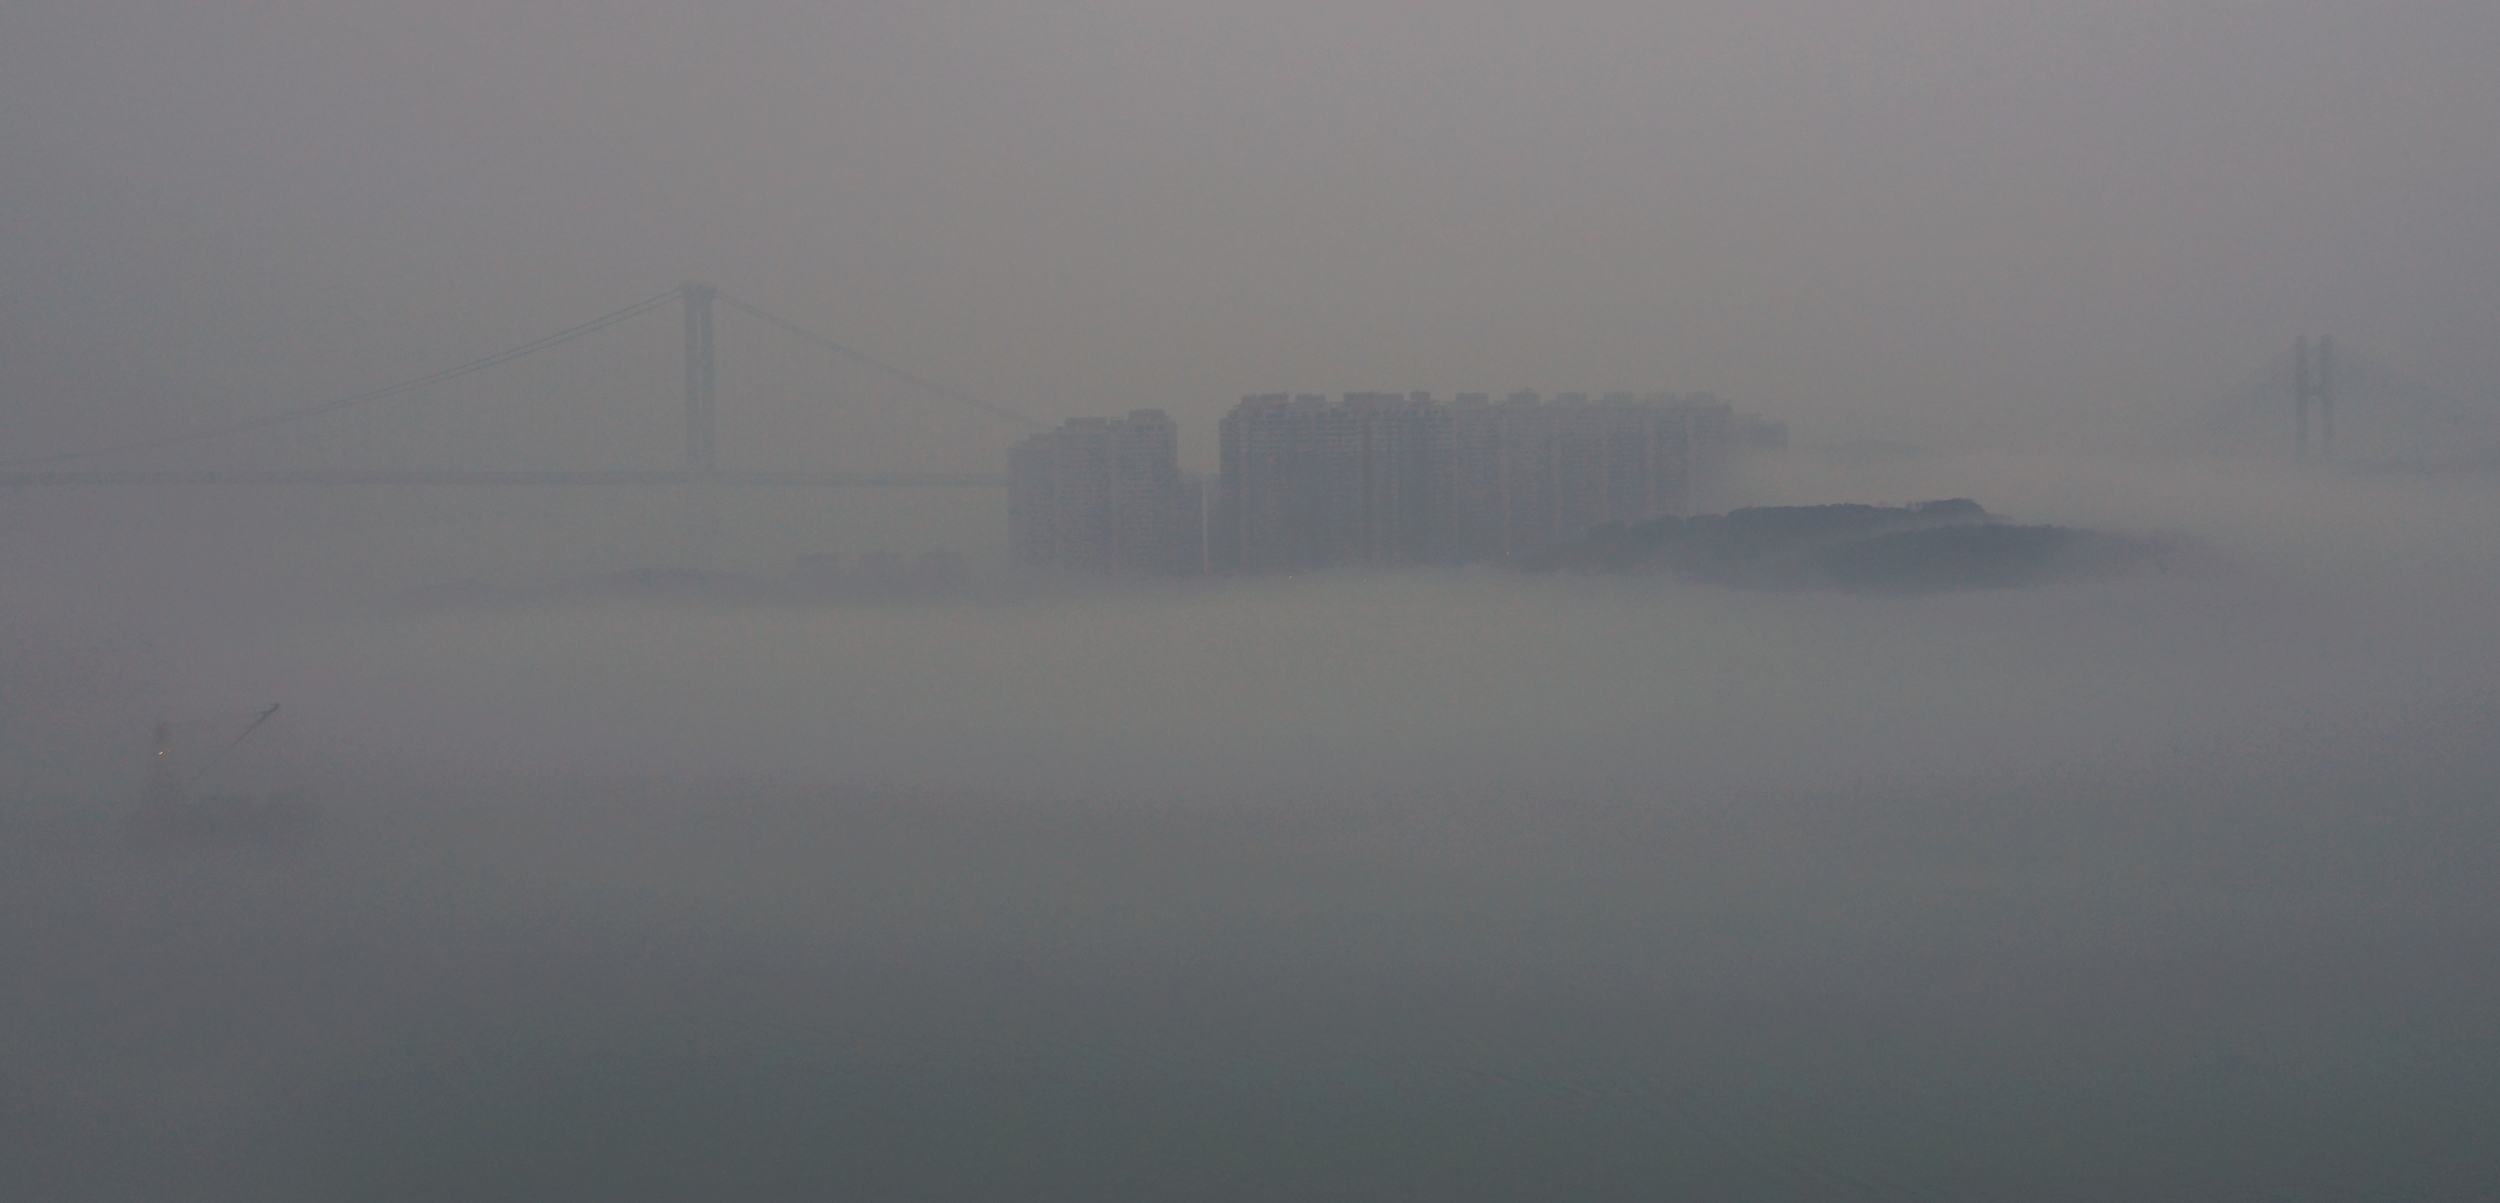 Foggy mornings are normal at this time of the year